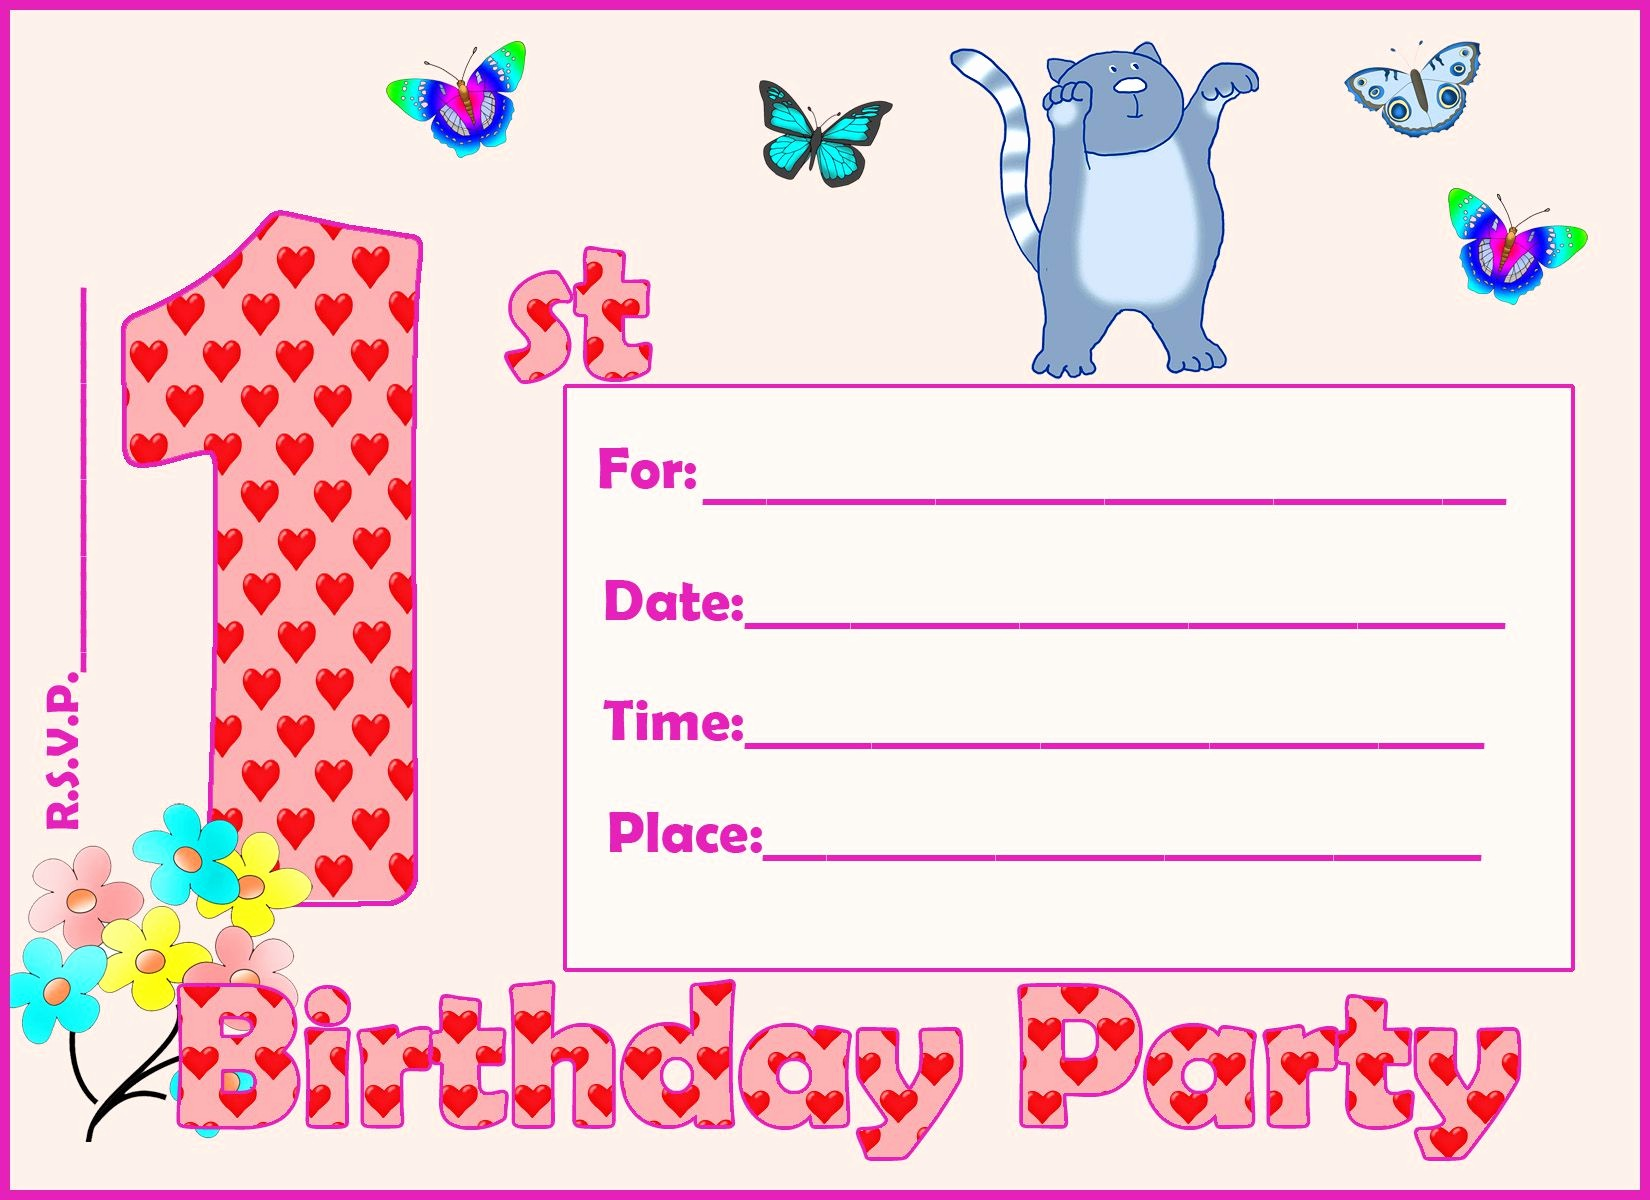 Birthday Party Invitation Card Template Lovely Card Template Summer Party Invitation Template Card